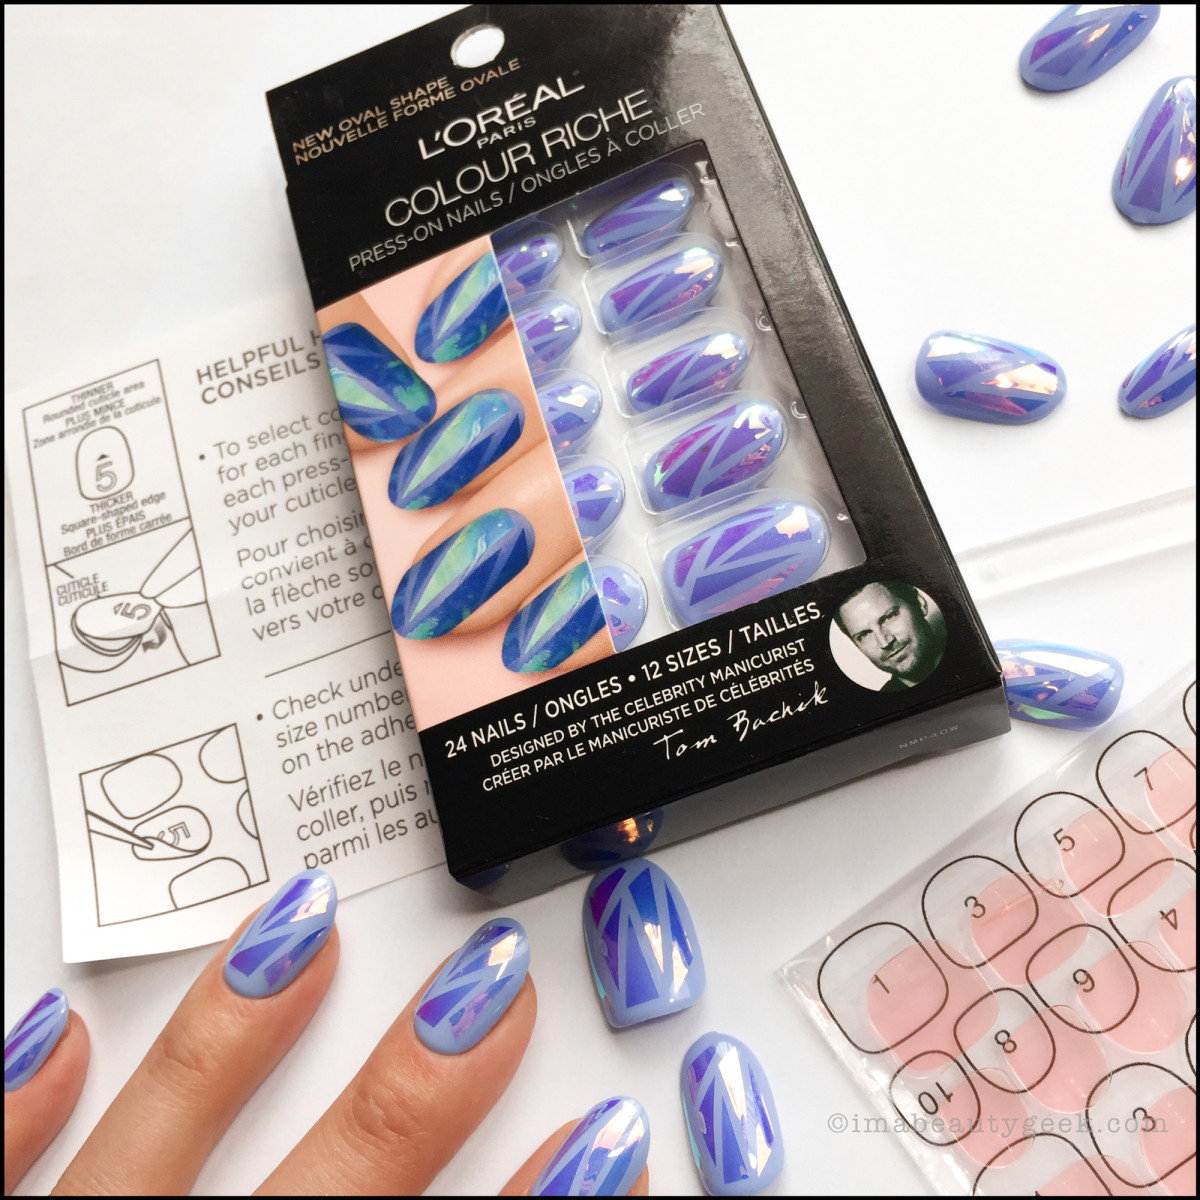 L'Oreal Press On Nails - Heart of Glass